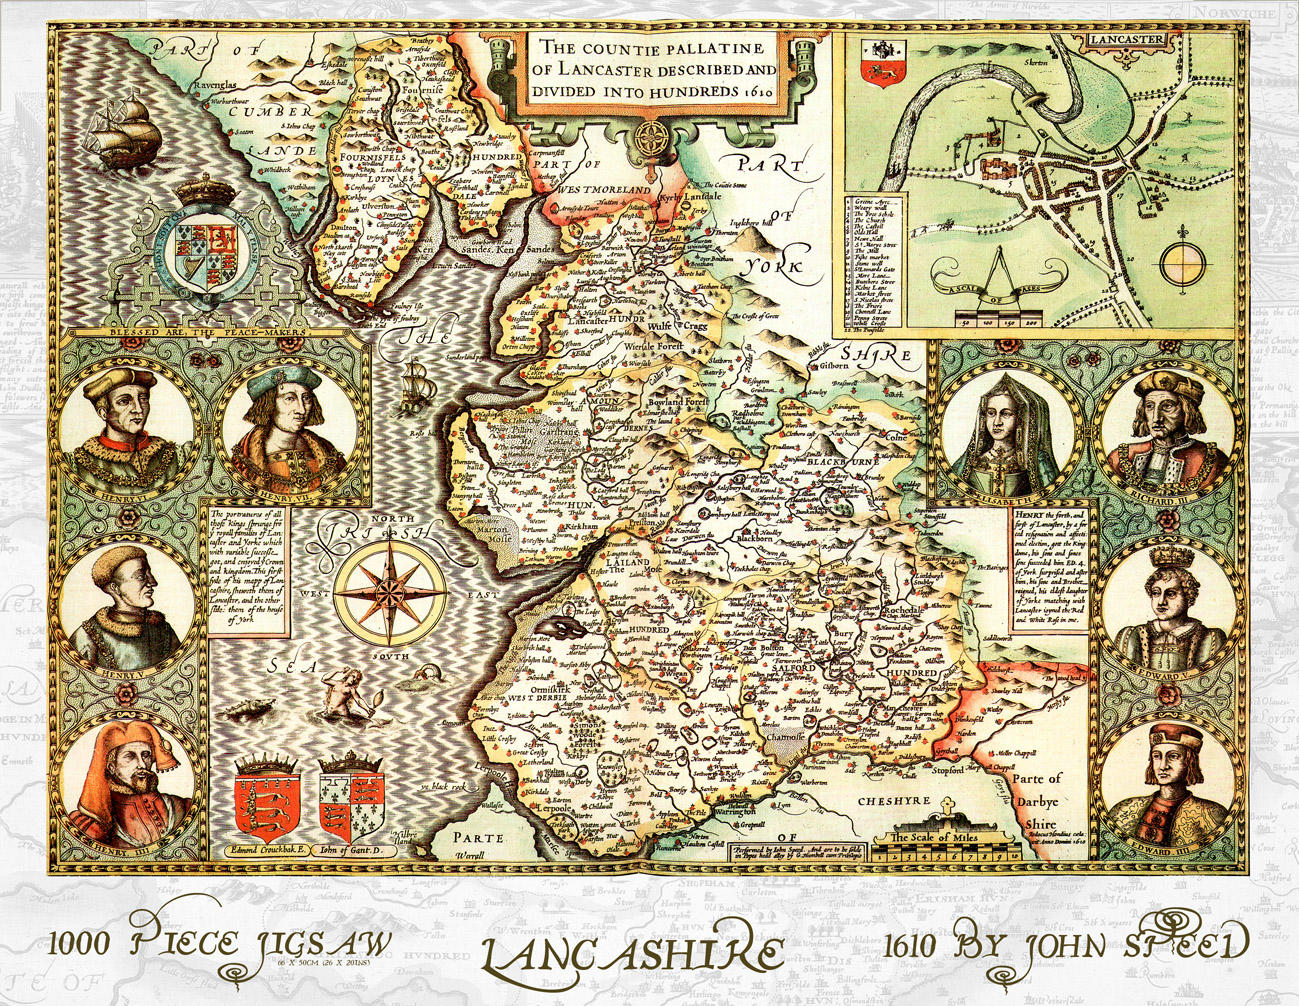 Lancashire map of 1610 by John Speed 1000 piece Jigsaw